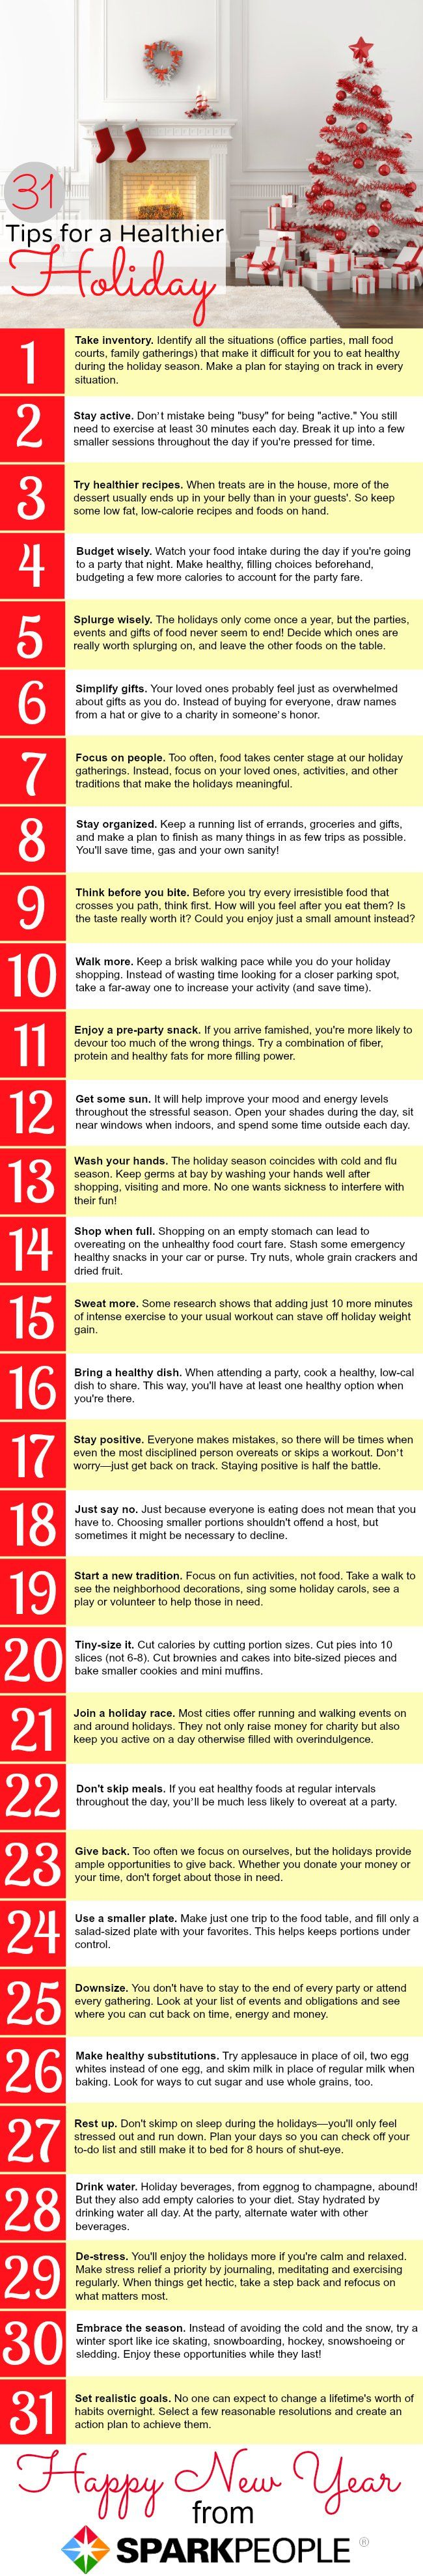 31 Tips for a Healthier Holiday |  Tips about nutrition, organization, spirituality and more!